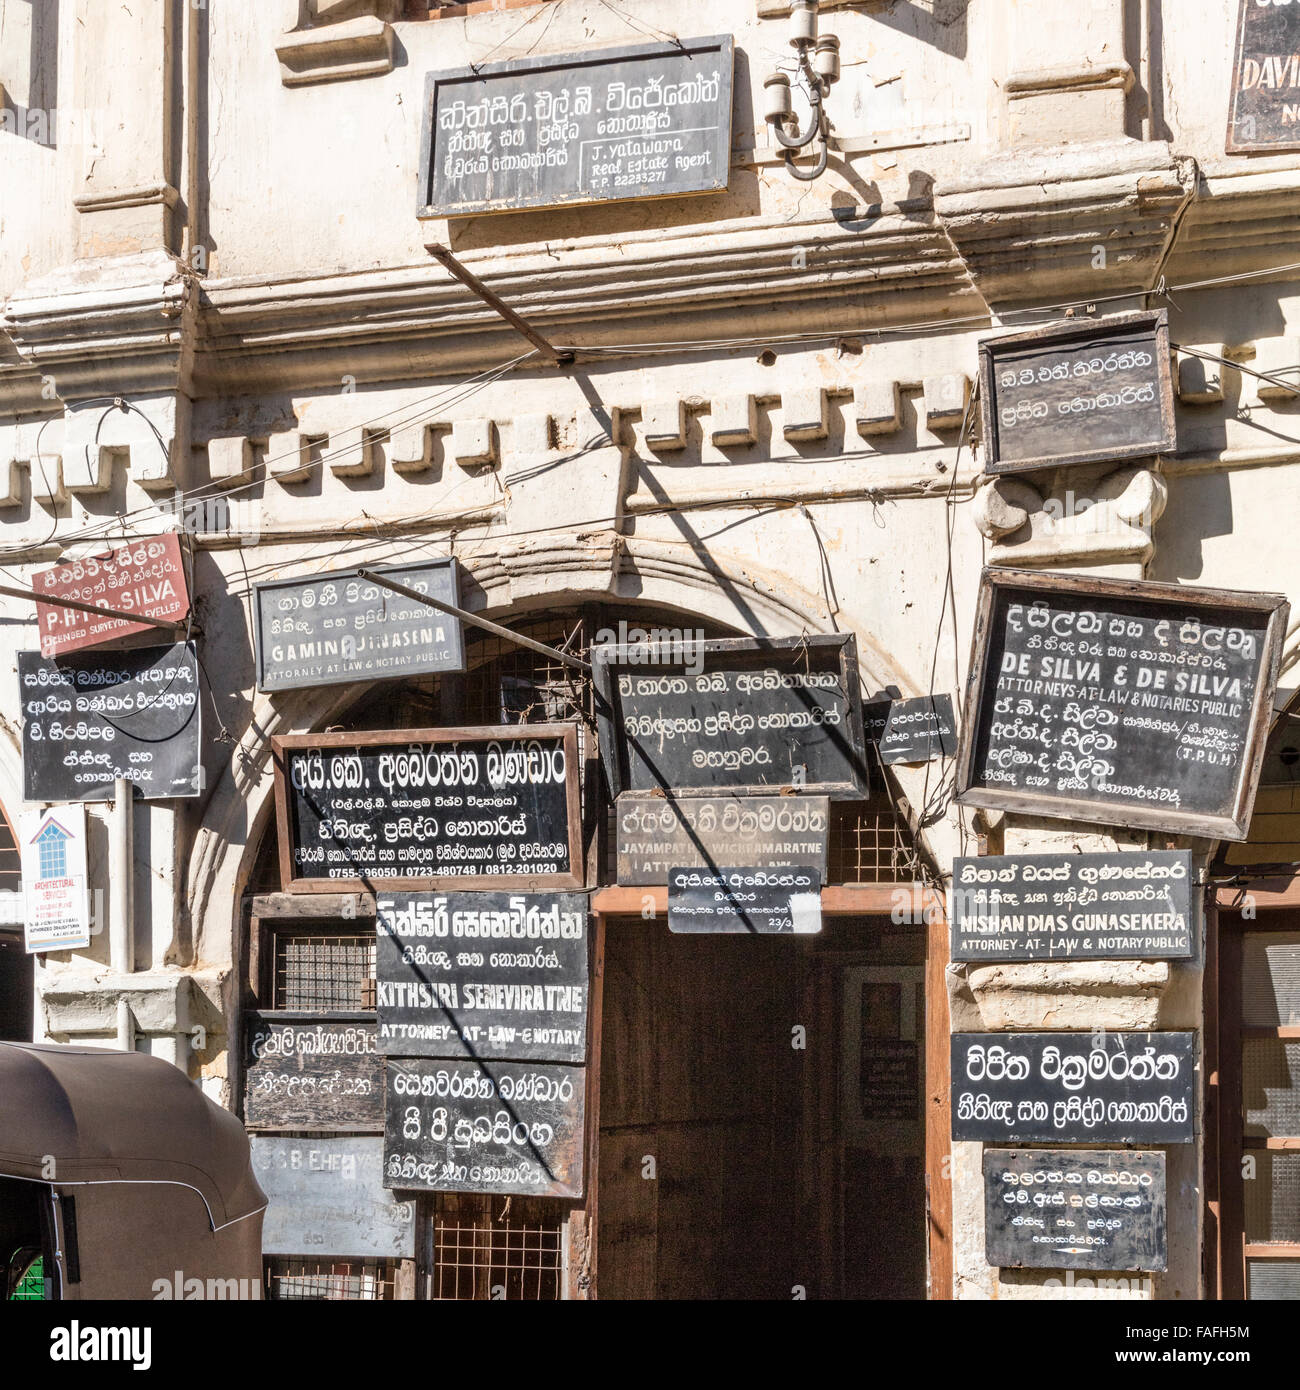 Placards denoting offices of attorneys and notaries on Deva St near the Temple of the Tooth in Kandy, Sri Lanka - Stock Image